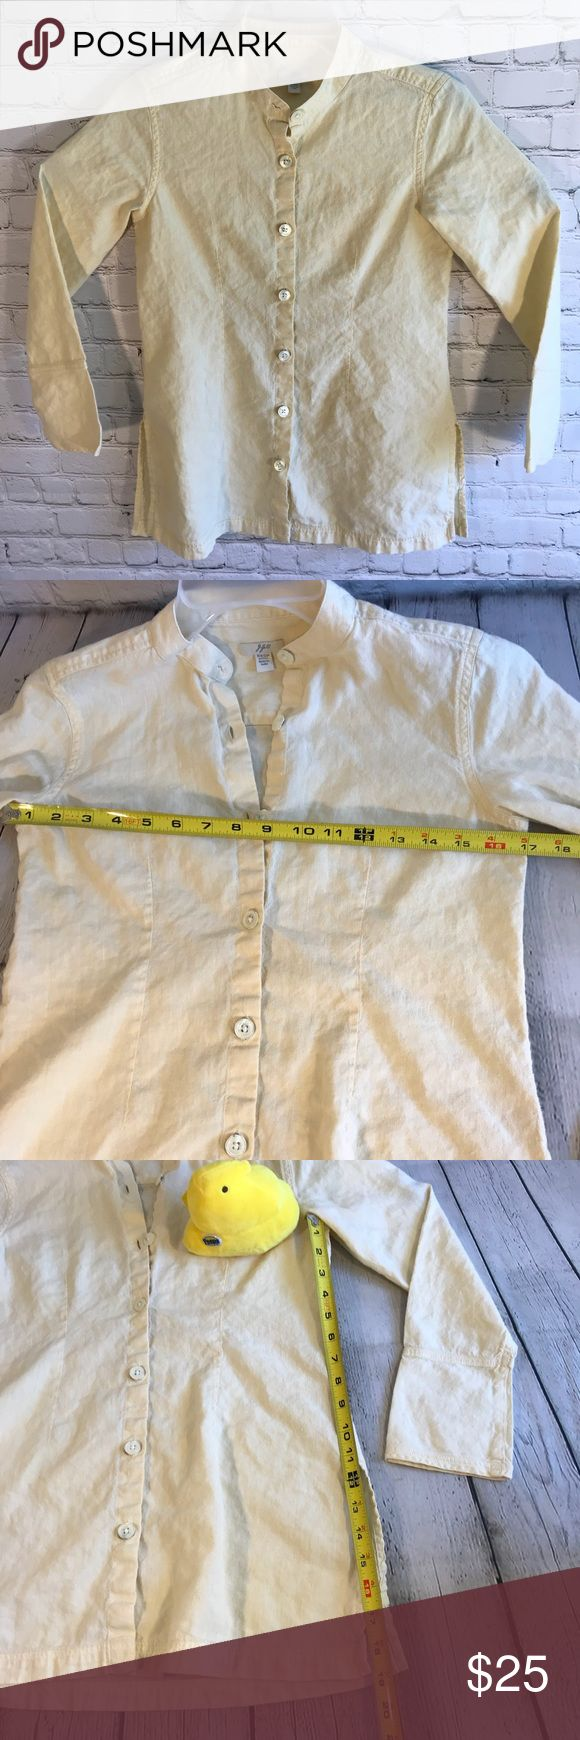 J Jill Linen Button Front Shirt Banded Collar XXSP This is a J Jill linen cotton long sleeve yellow button front banded collar shirt top size XXPS. Freshly washed. Great condition. See pics for measurements. Machine washable. J. Jill Tops Button Down Shirts